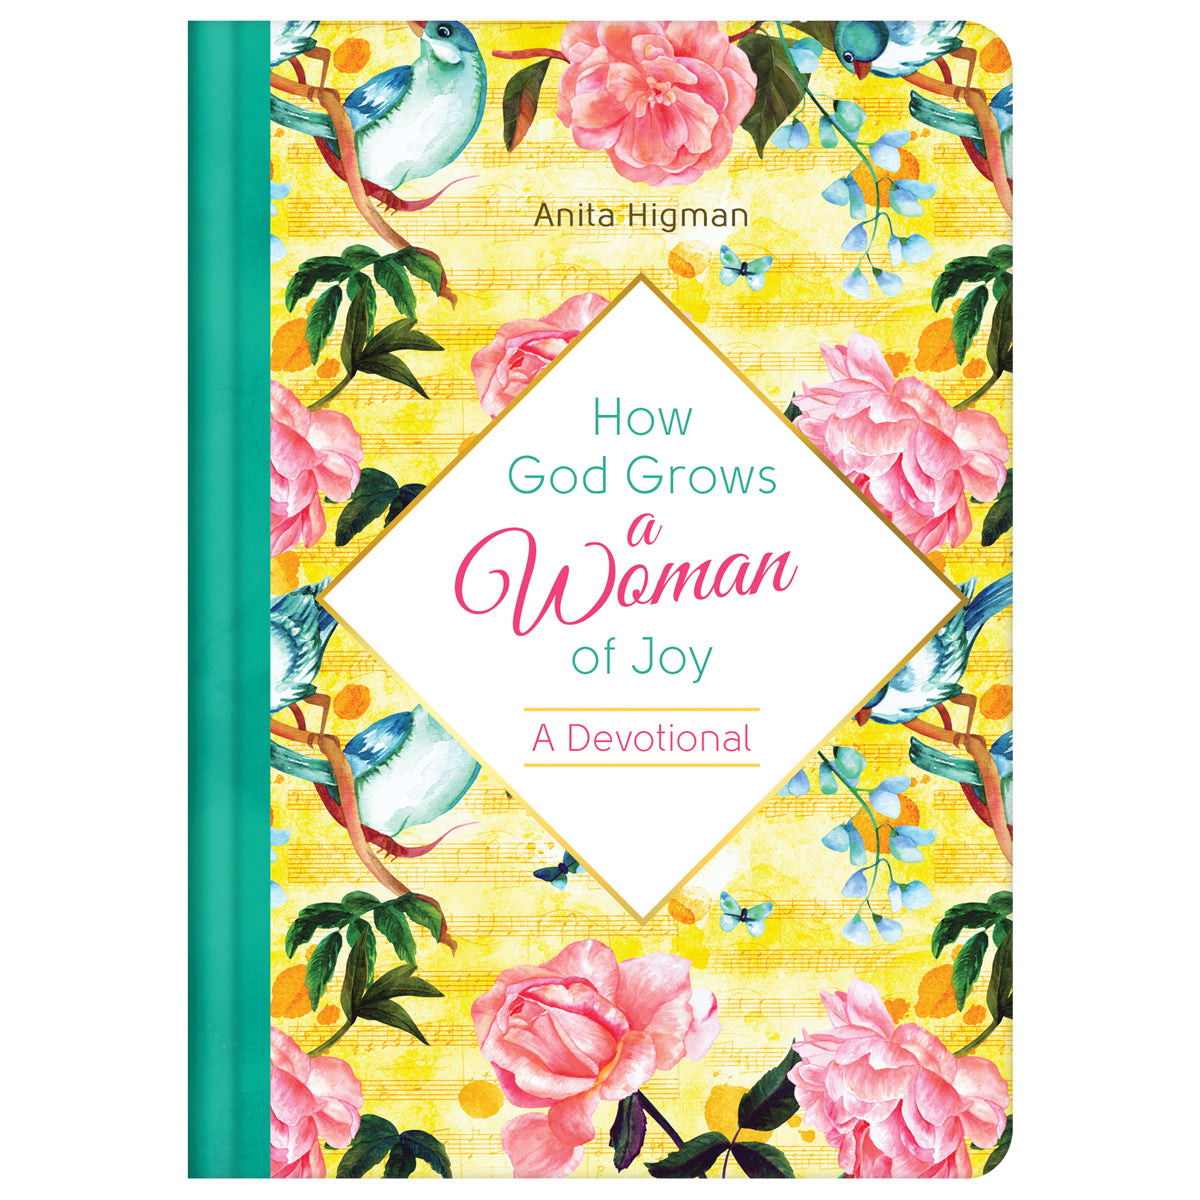 How God Grows A Woman Of Joy (Hardcover)